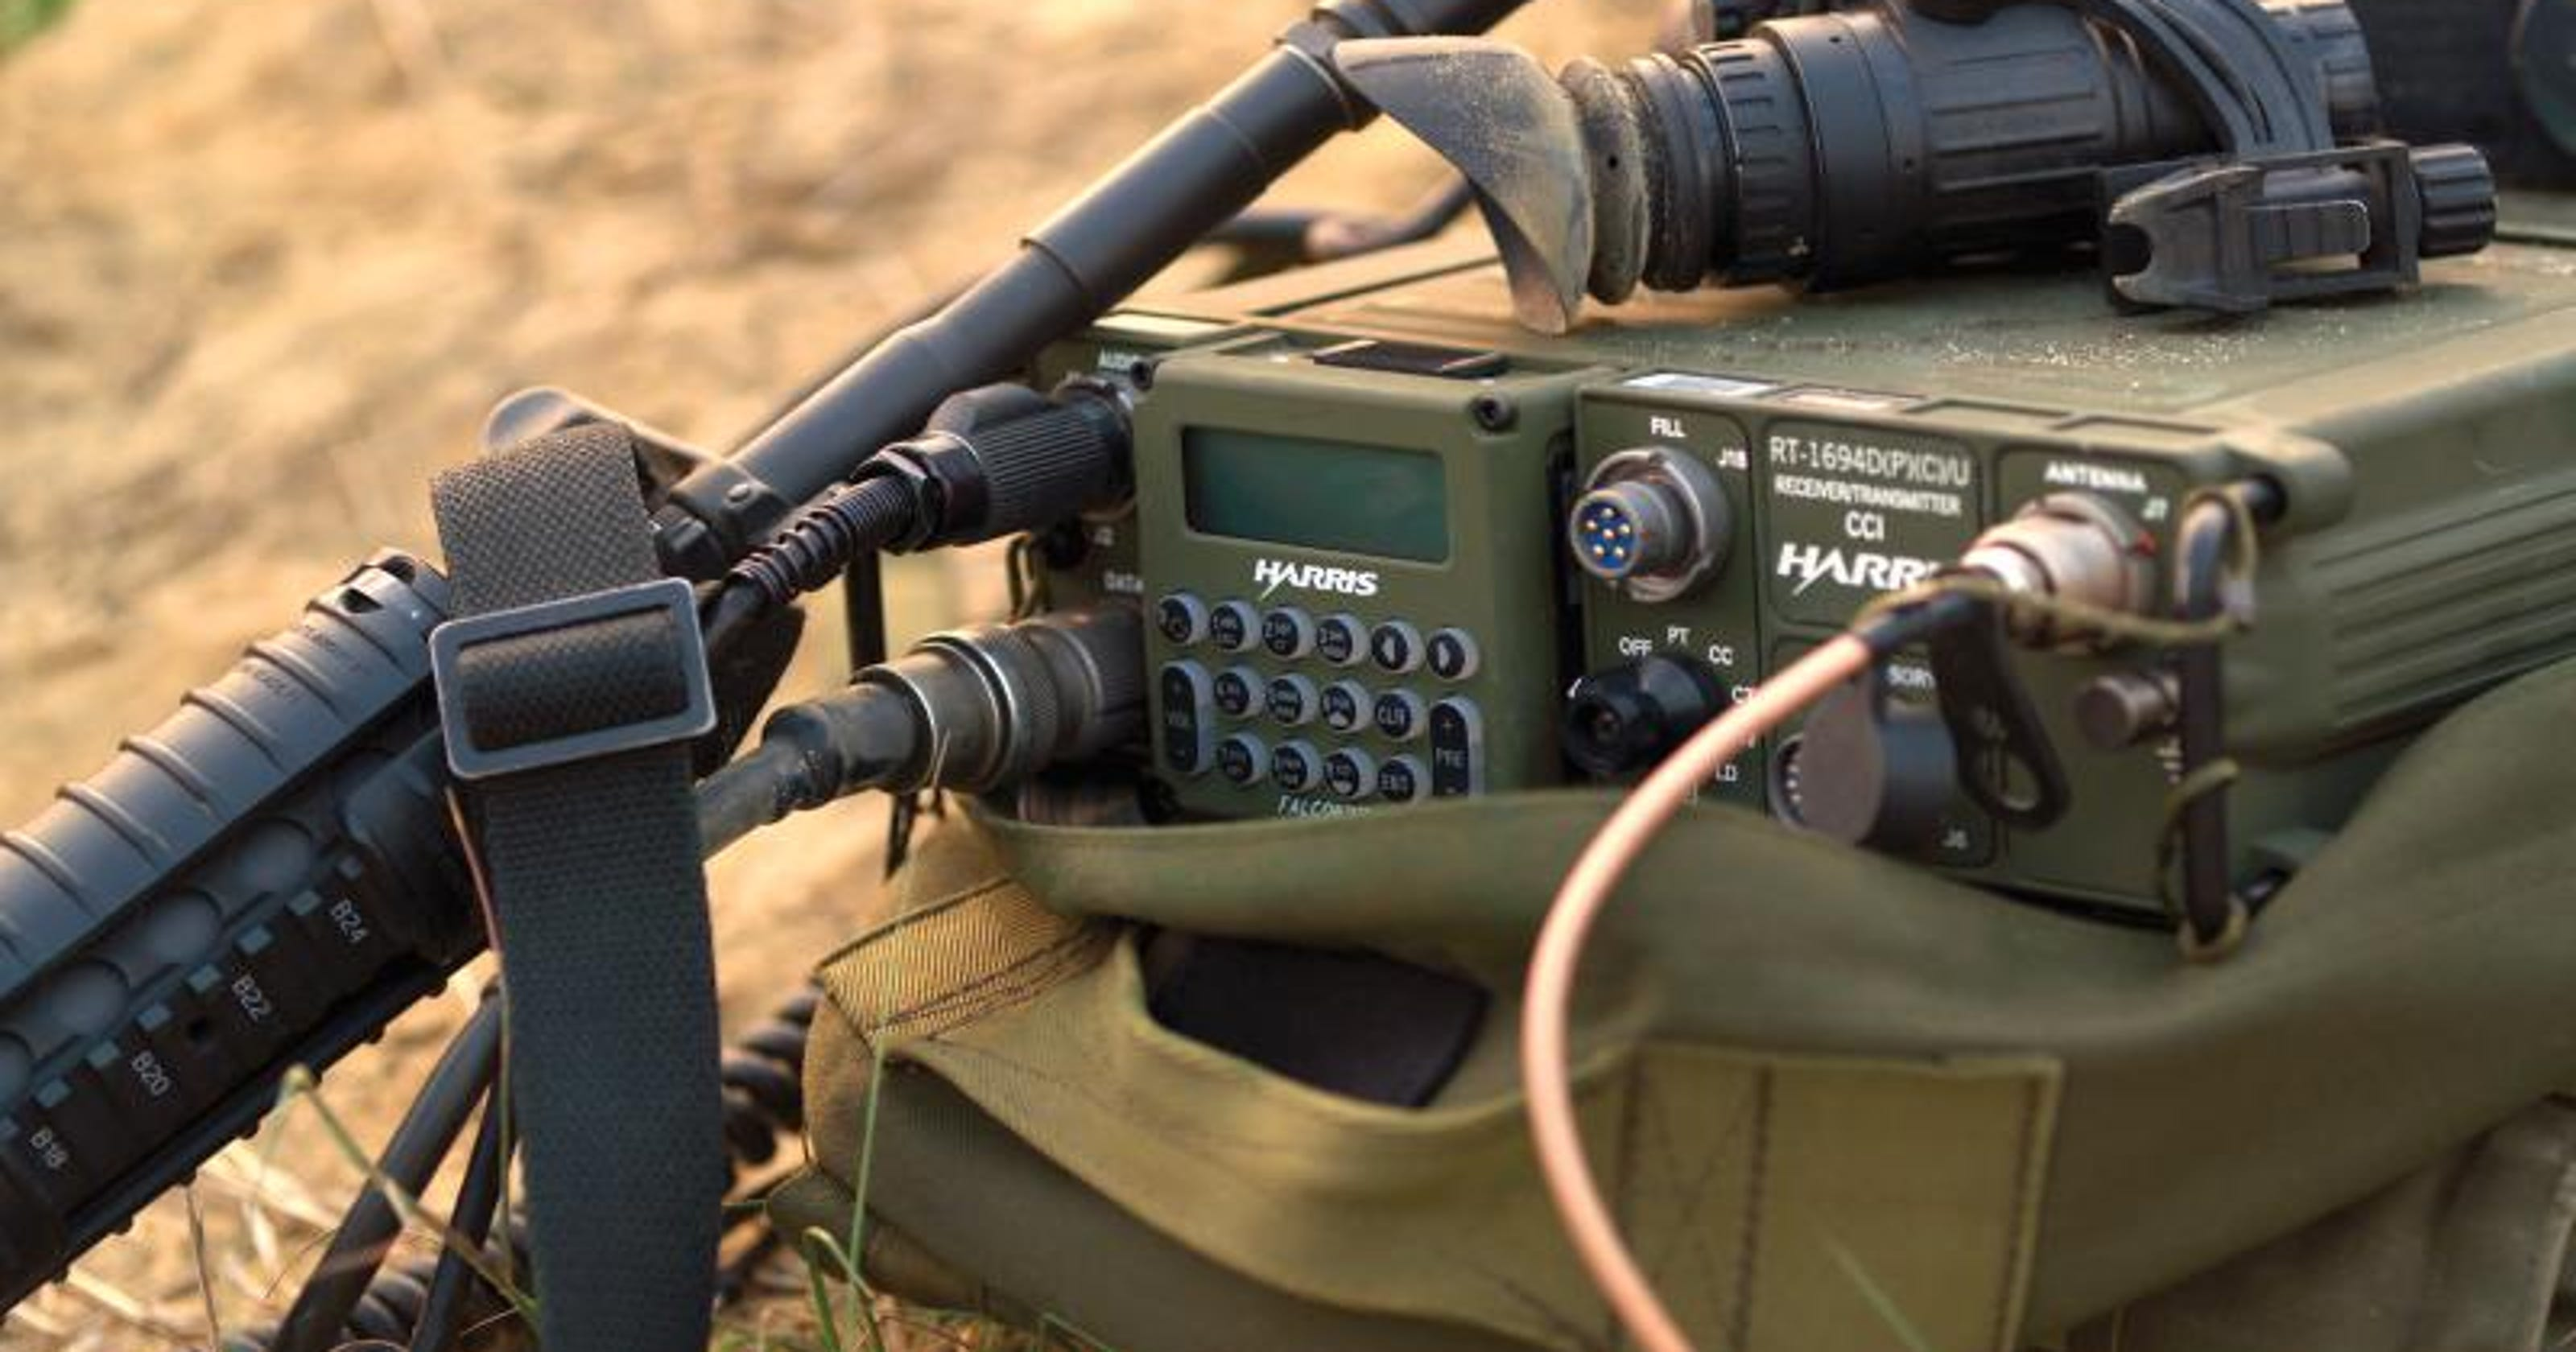 Harris Corp  signs multiple deals for radios